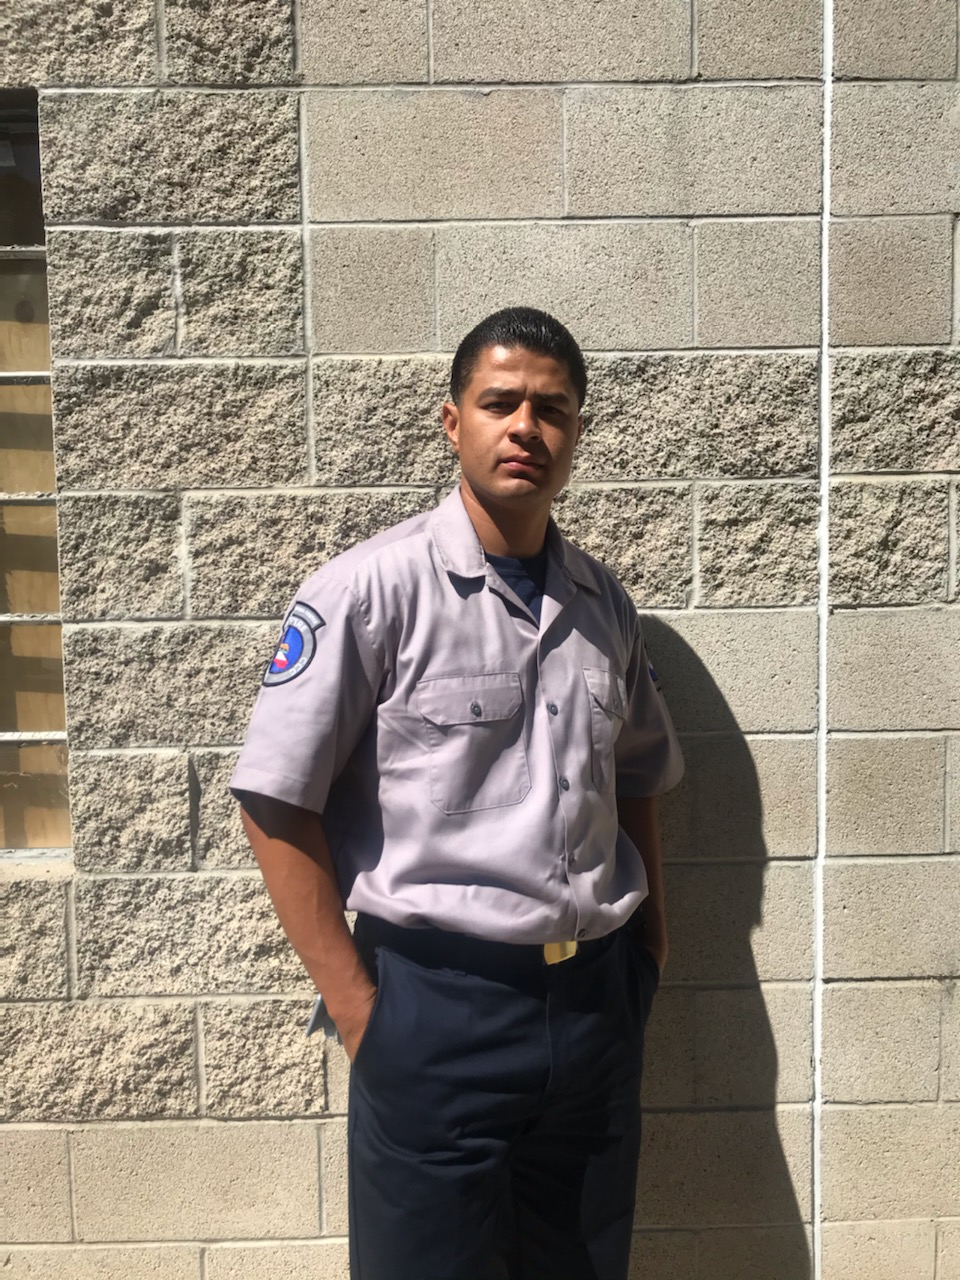 Edward-Lopez, As fire season bears down on thirsty California, incarcerated crews prepare to battle flames, Local News & Views